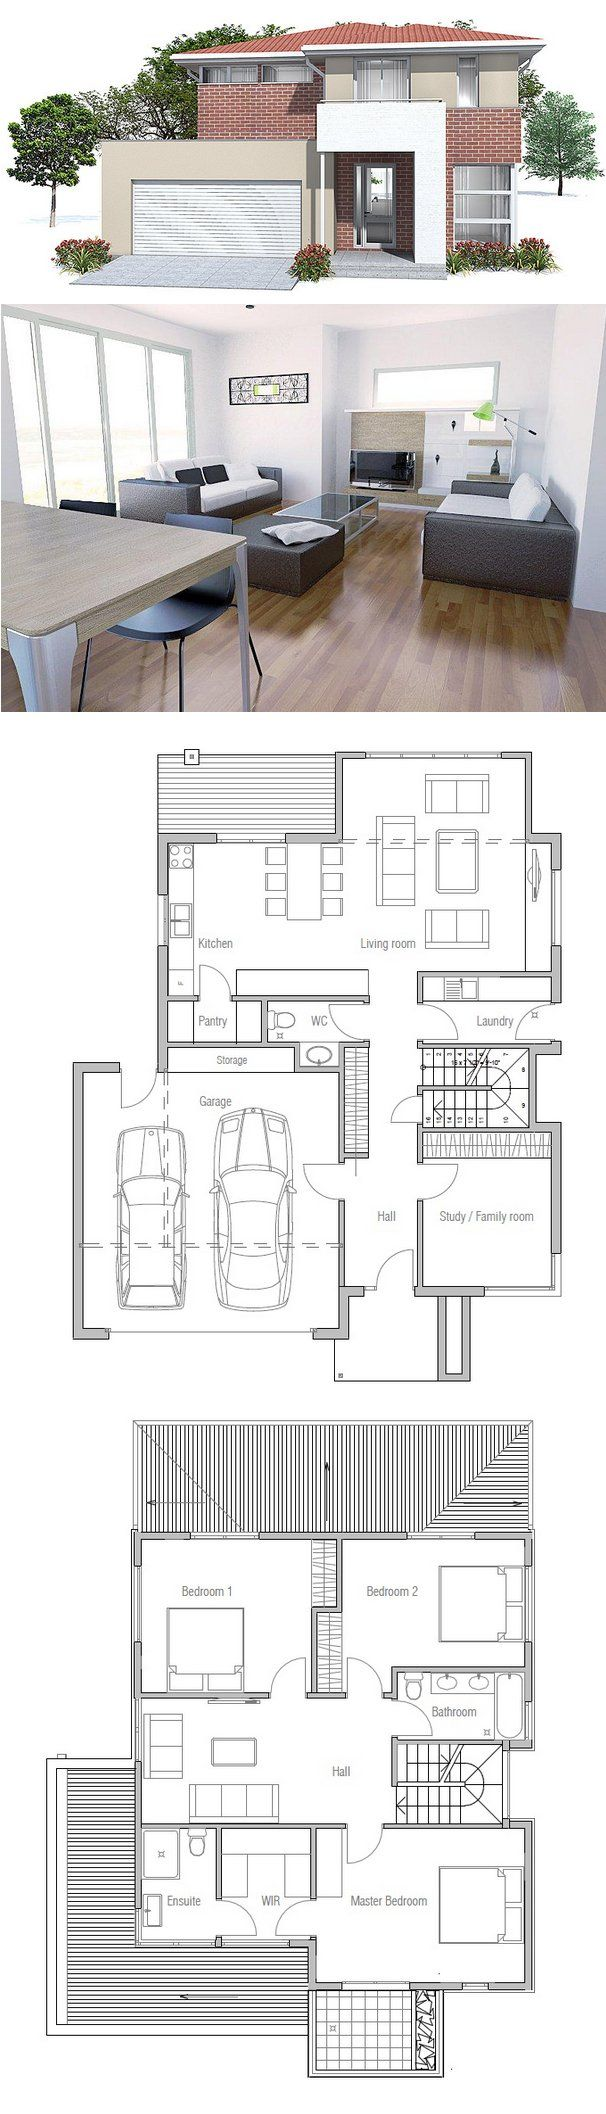 Modern House Plan With Three Bedrooms Floor Plan From Concepthome